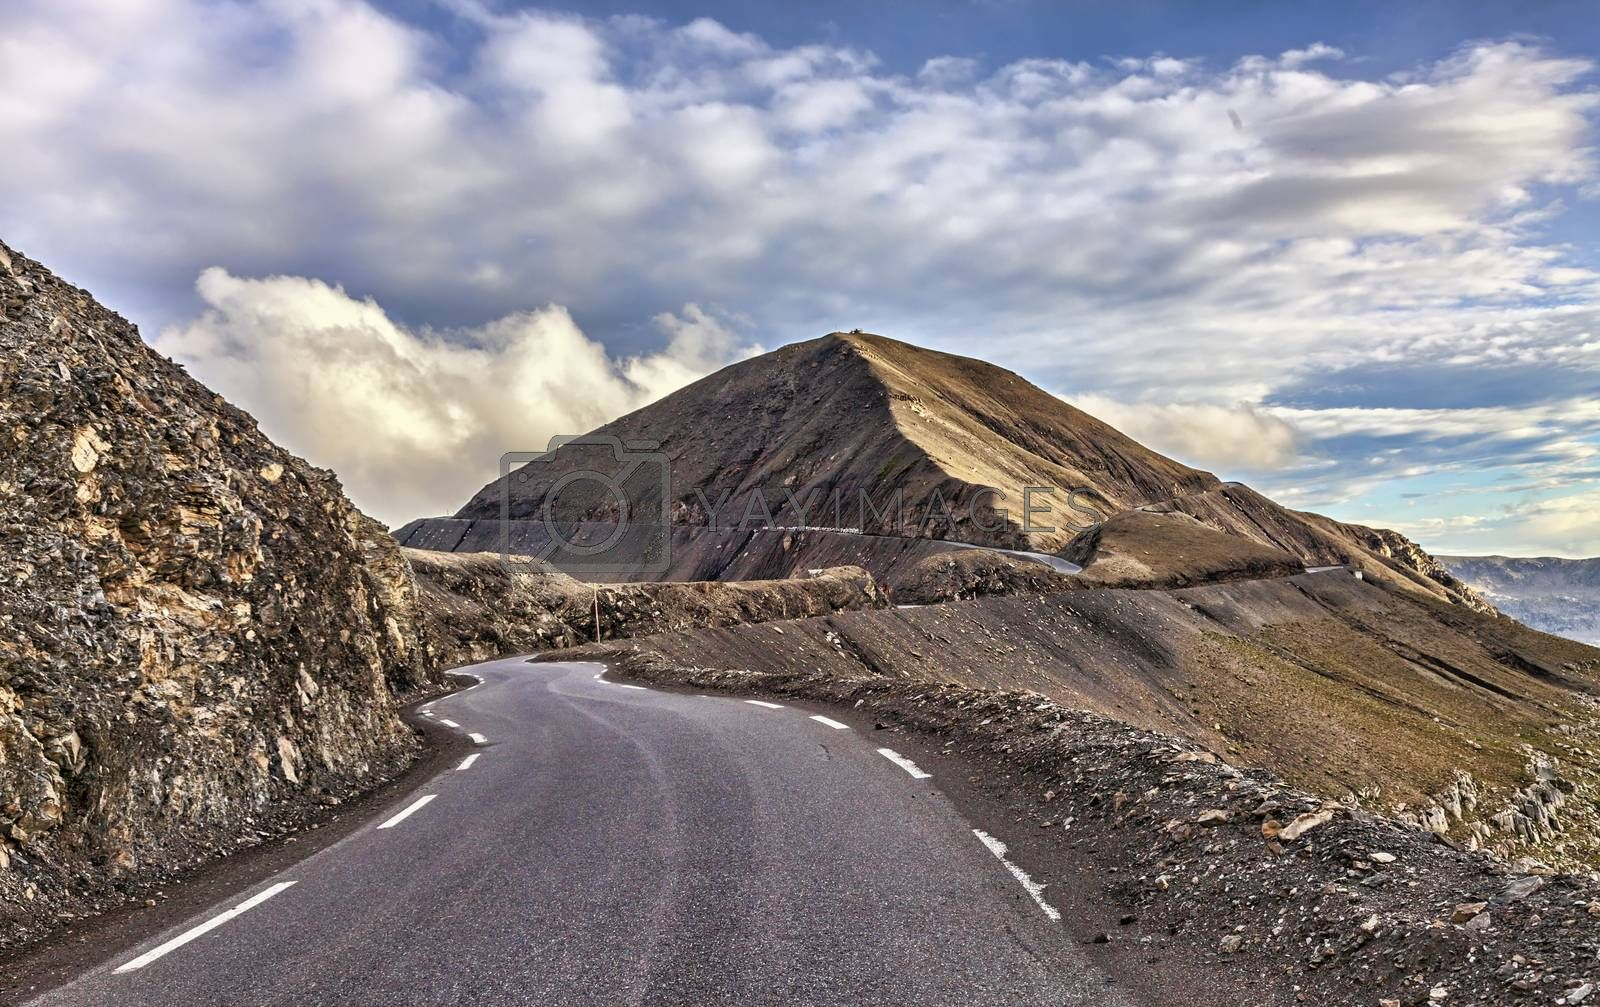 Image of the road to Cime de La Bonnette (2802m) which is the highest asphalted road in France and one of the highest road in Europe. It is located in the Mercantour National Park on the border of the departments of Alpes-Maritimes and Alpes-de-Haute-Provence.